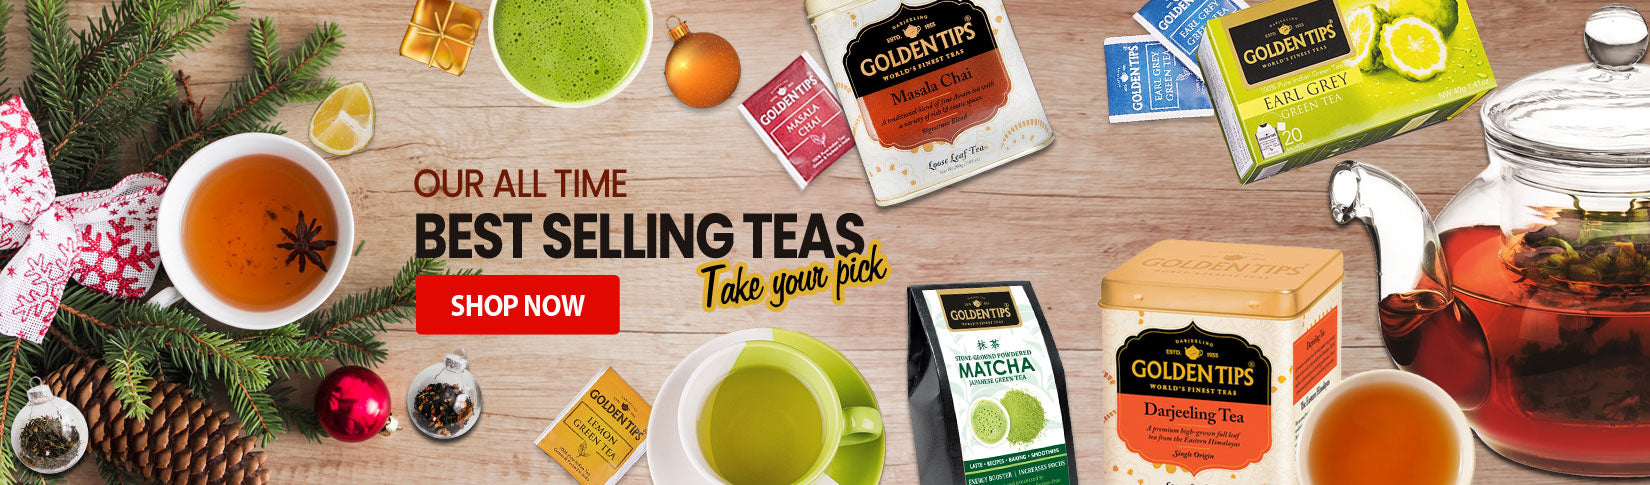 Our all time best selling teas